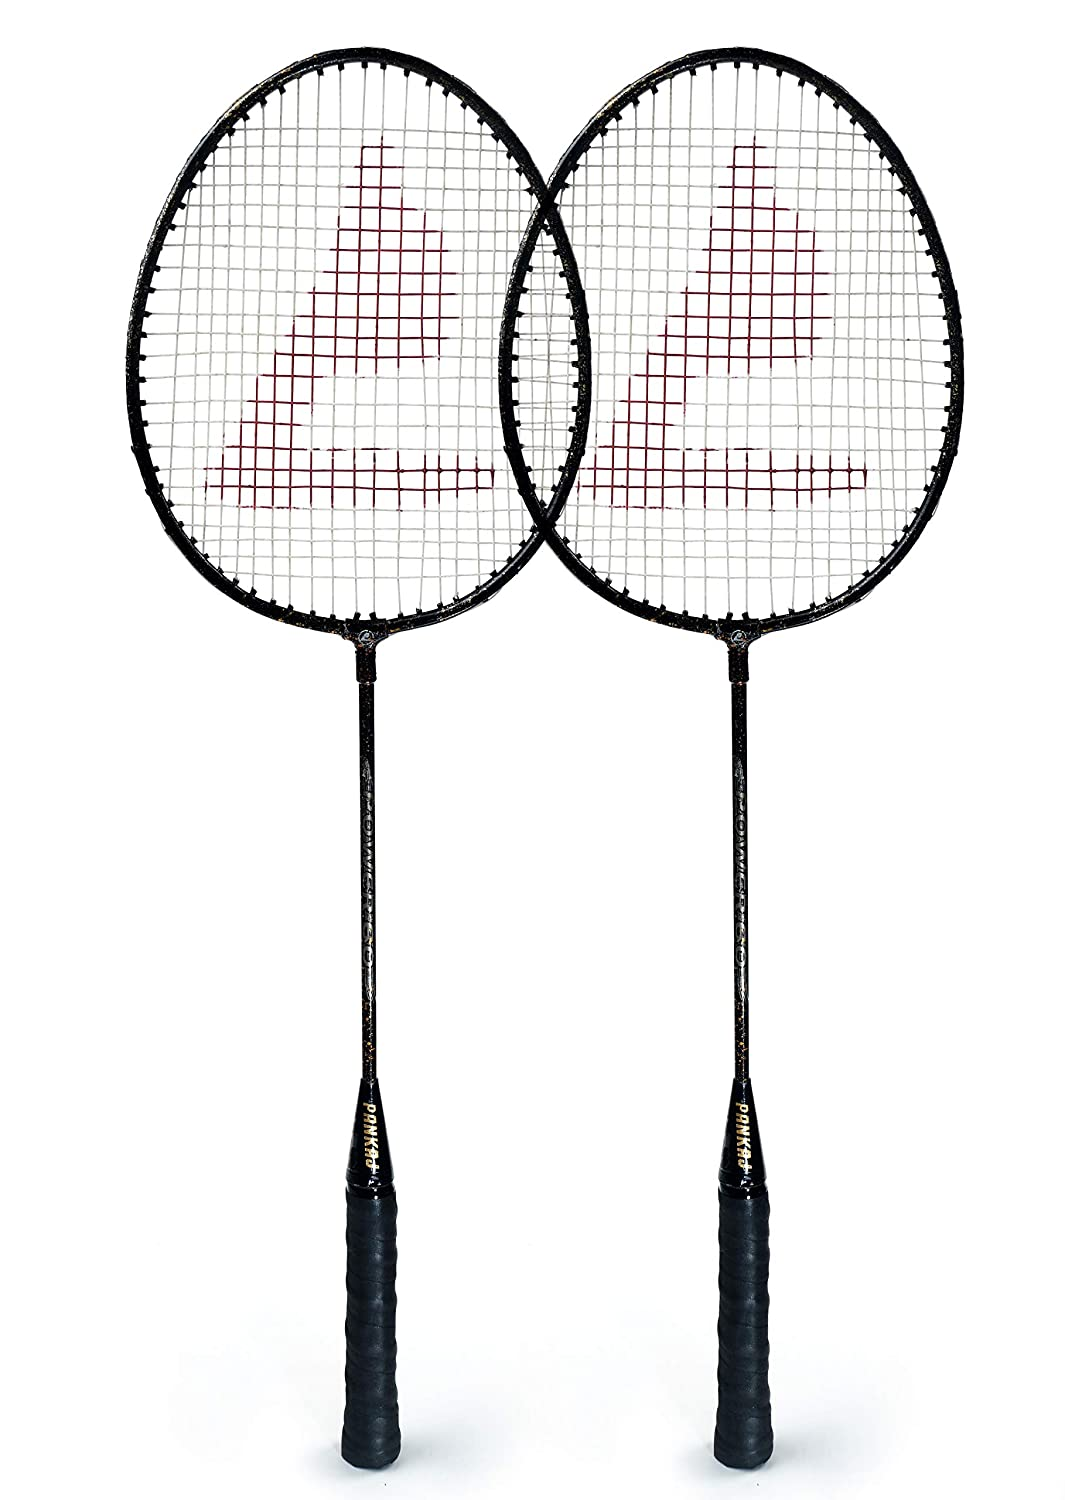 Badminton Rackets - PB 60 - Pack for 2 (Black)